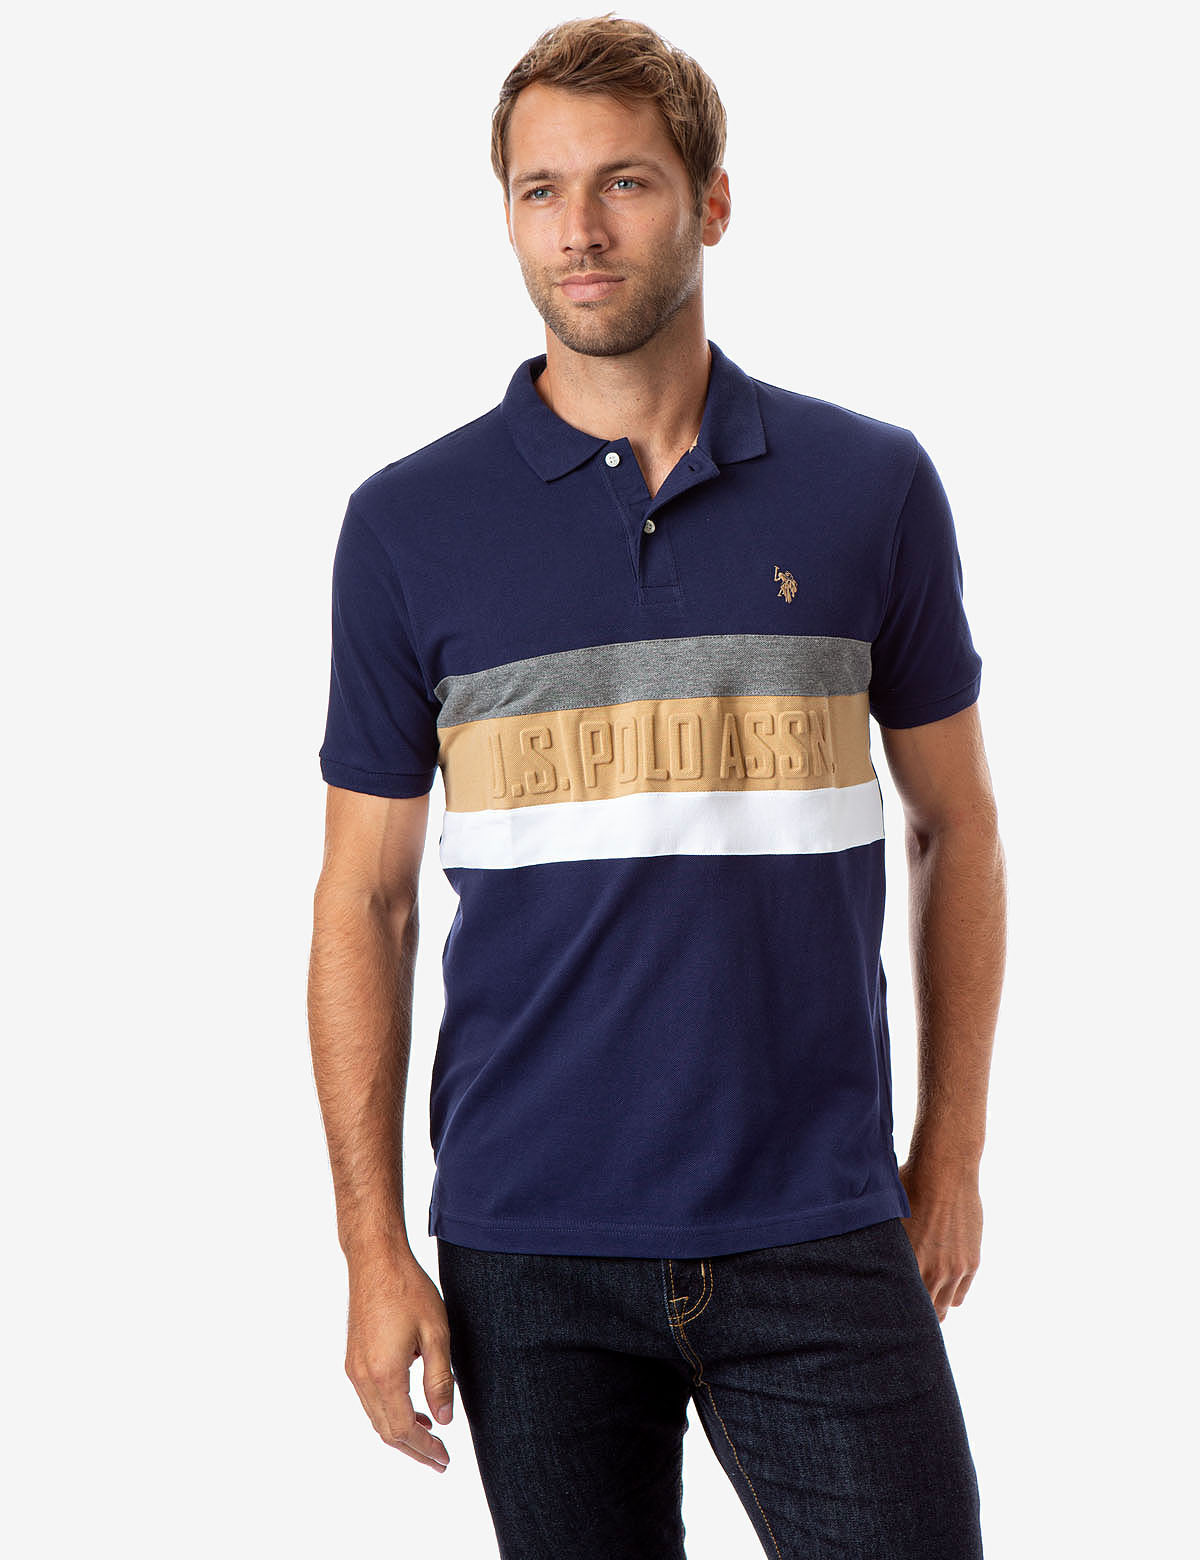 STRIPED EMBOSSED POLO SHIRT - U.S. Polo Assn.